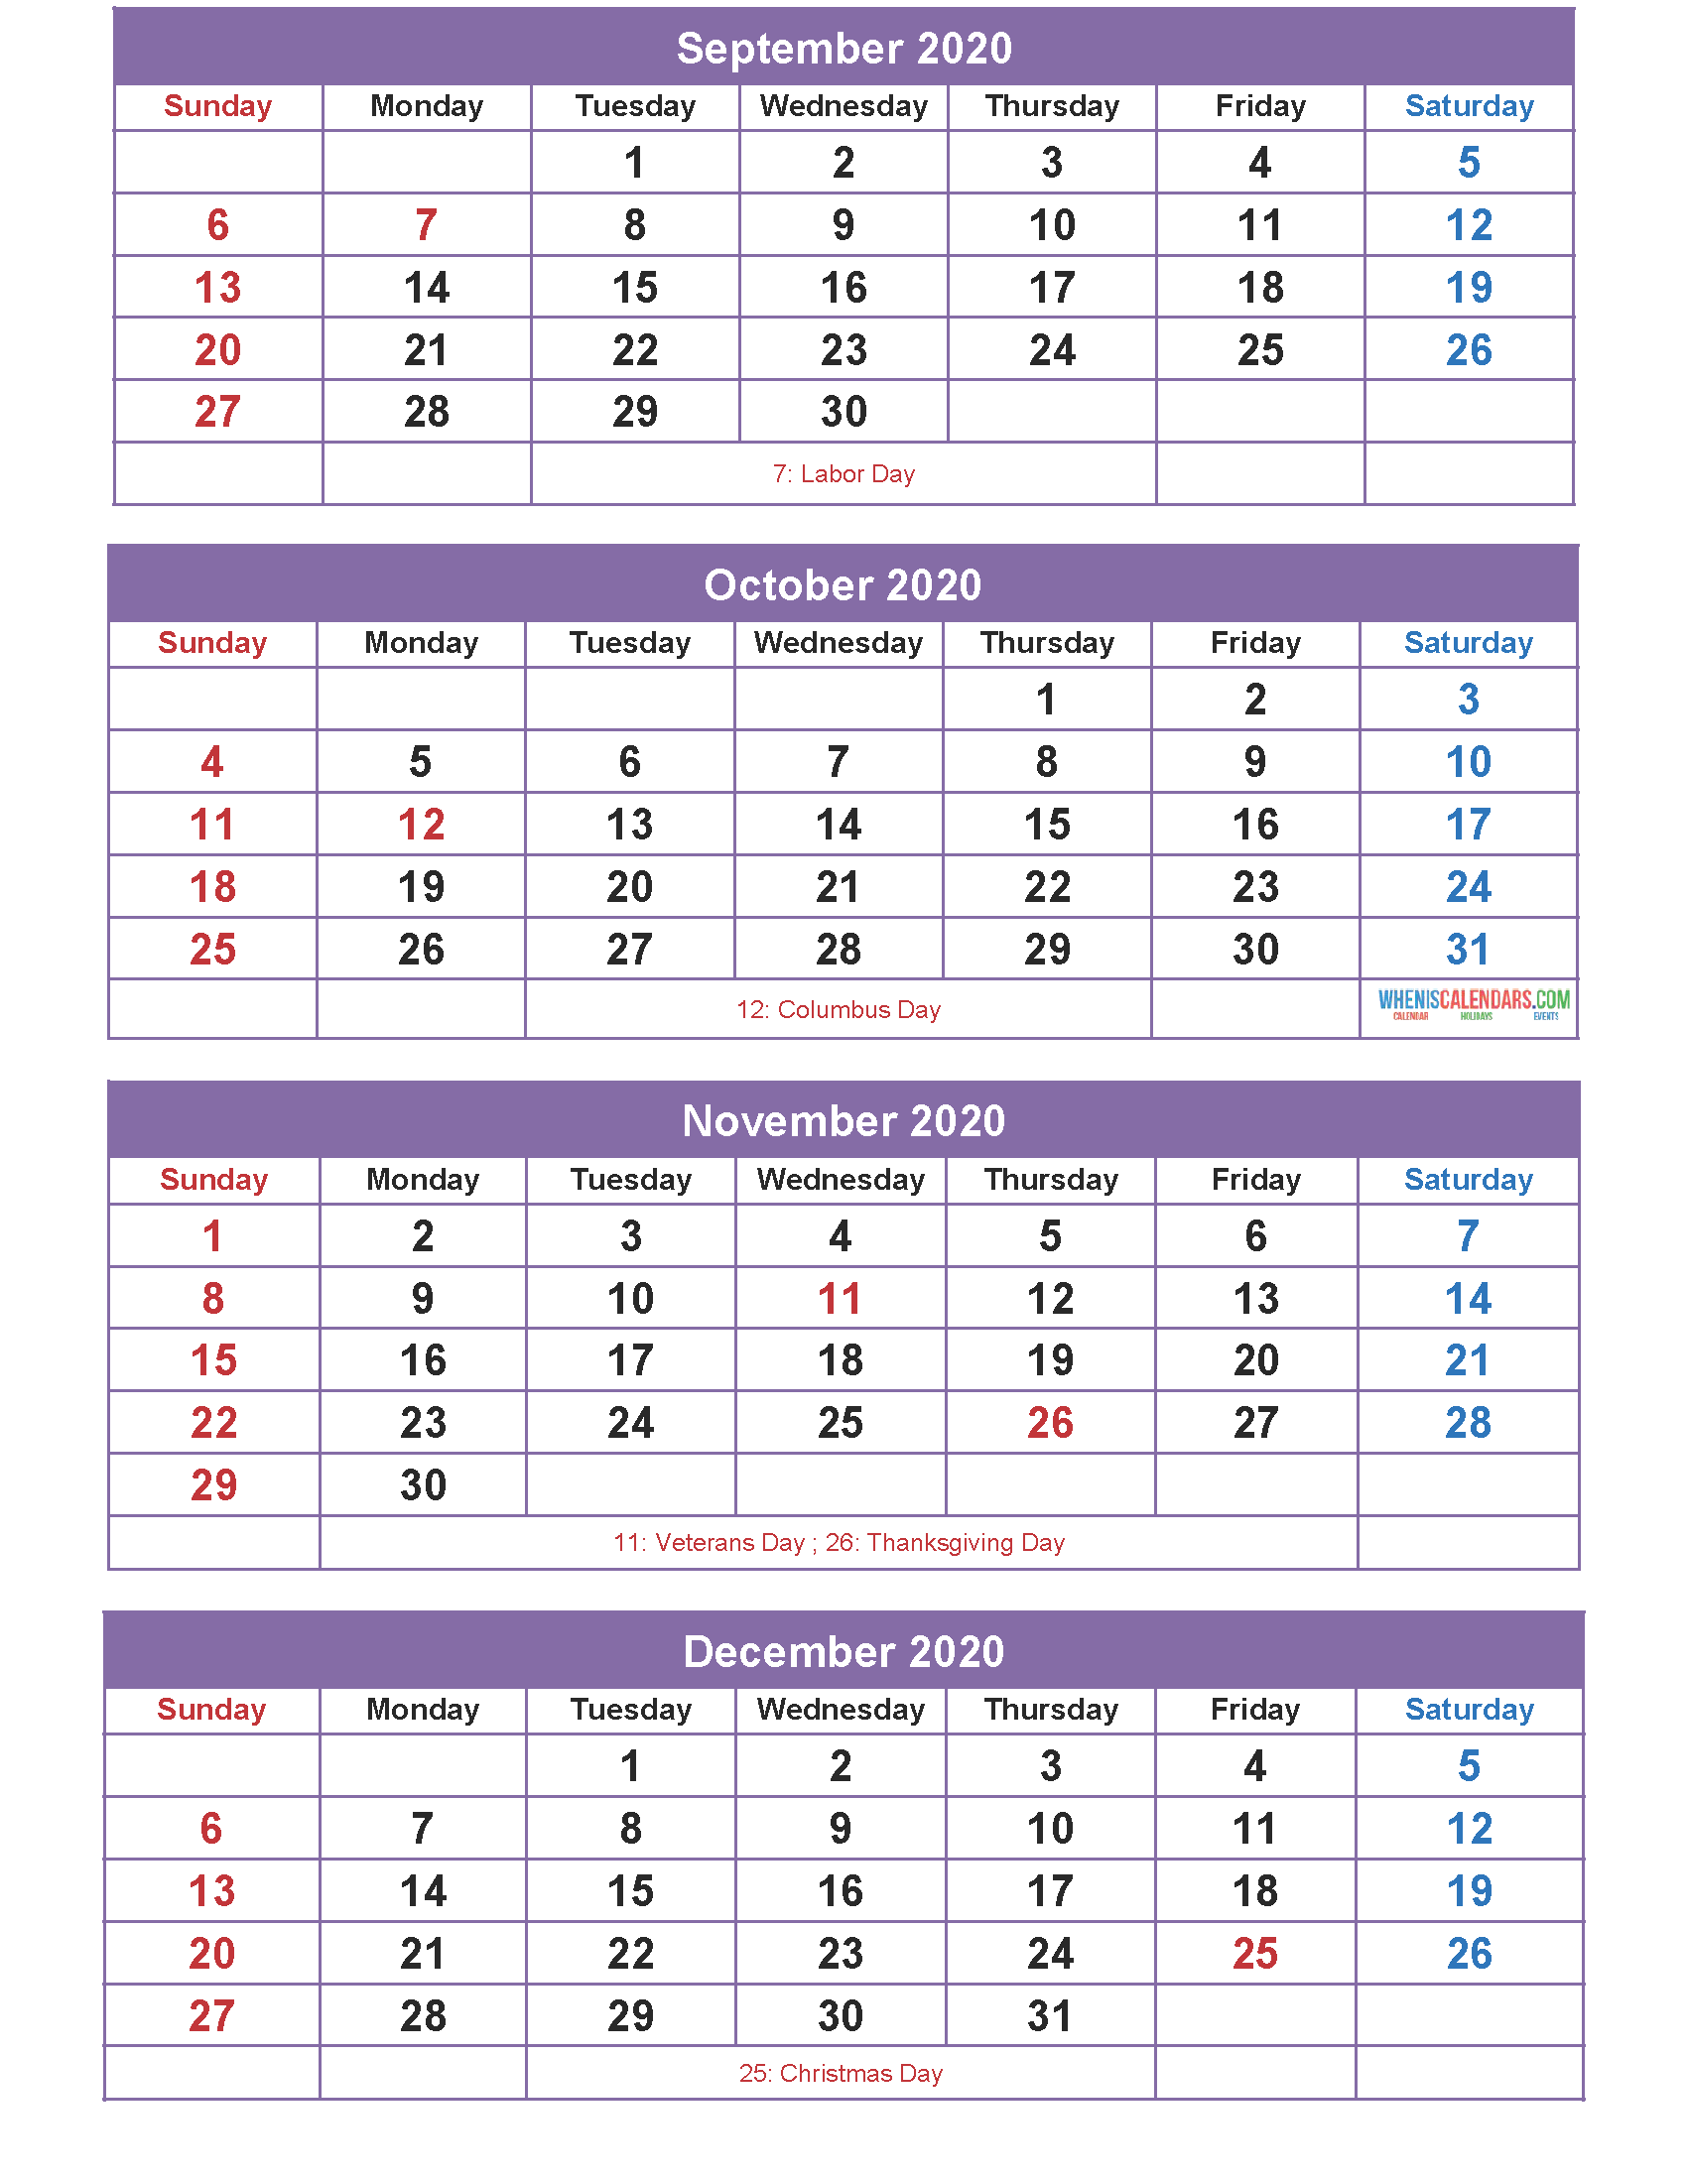 Printable Calendar 2020 September to December as Word, PDF ...